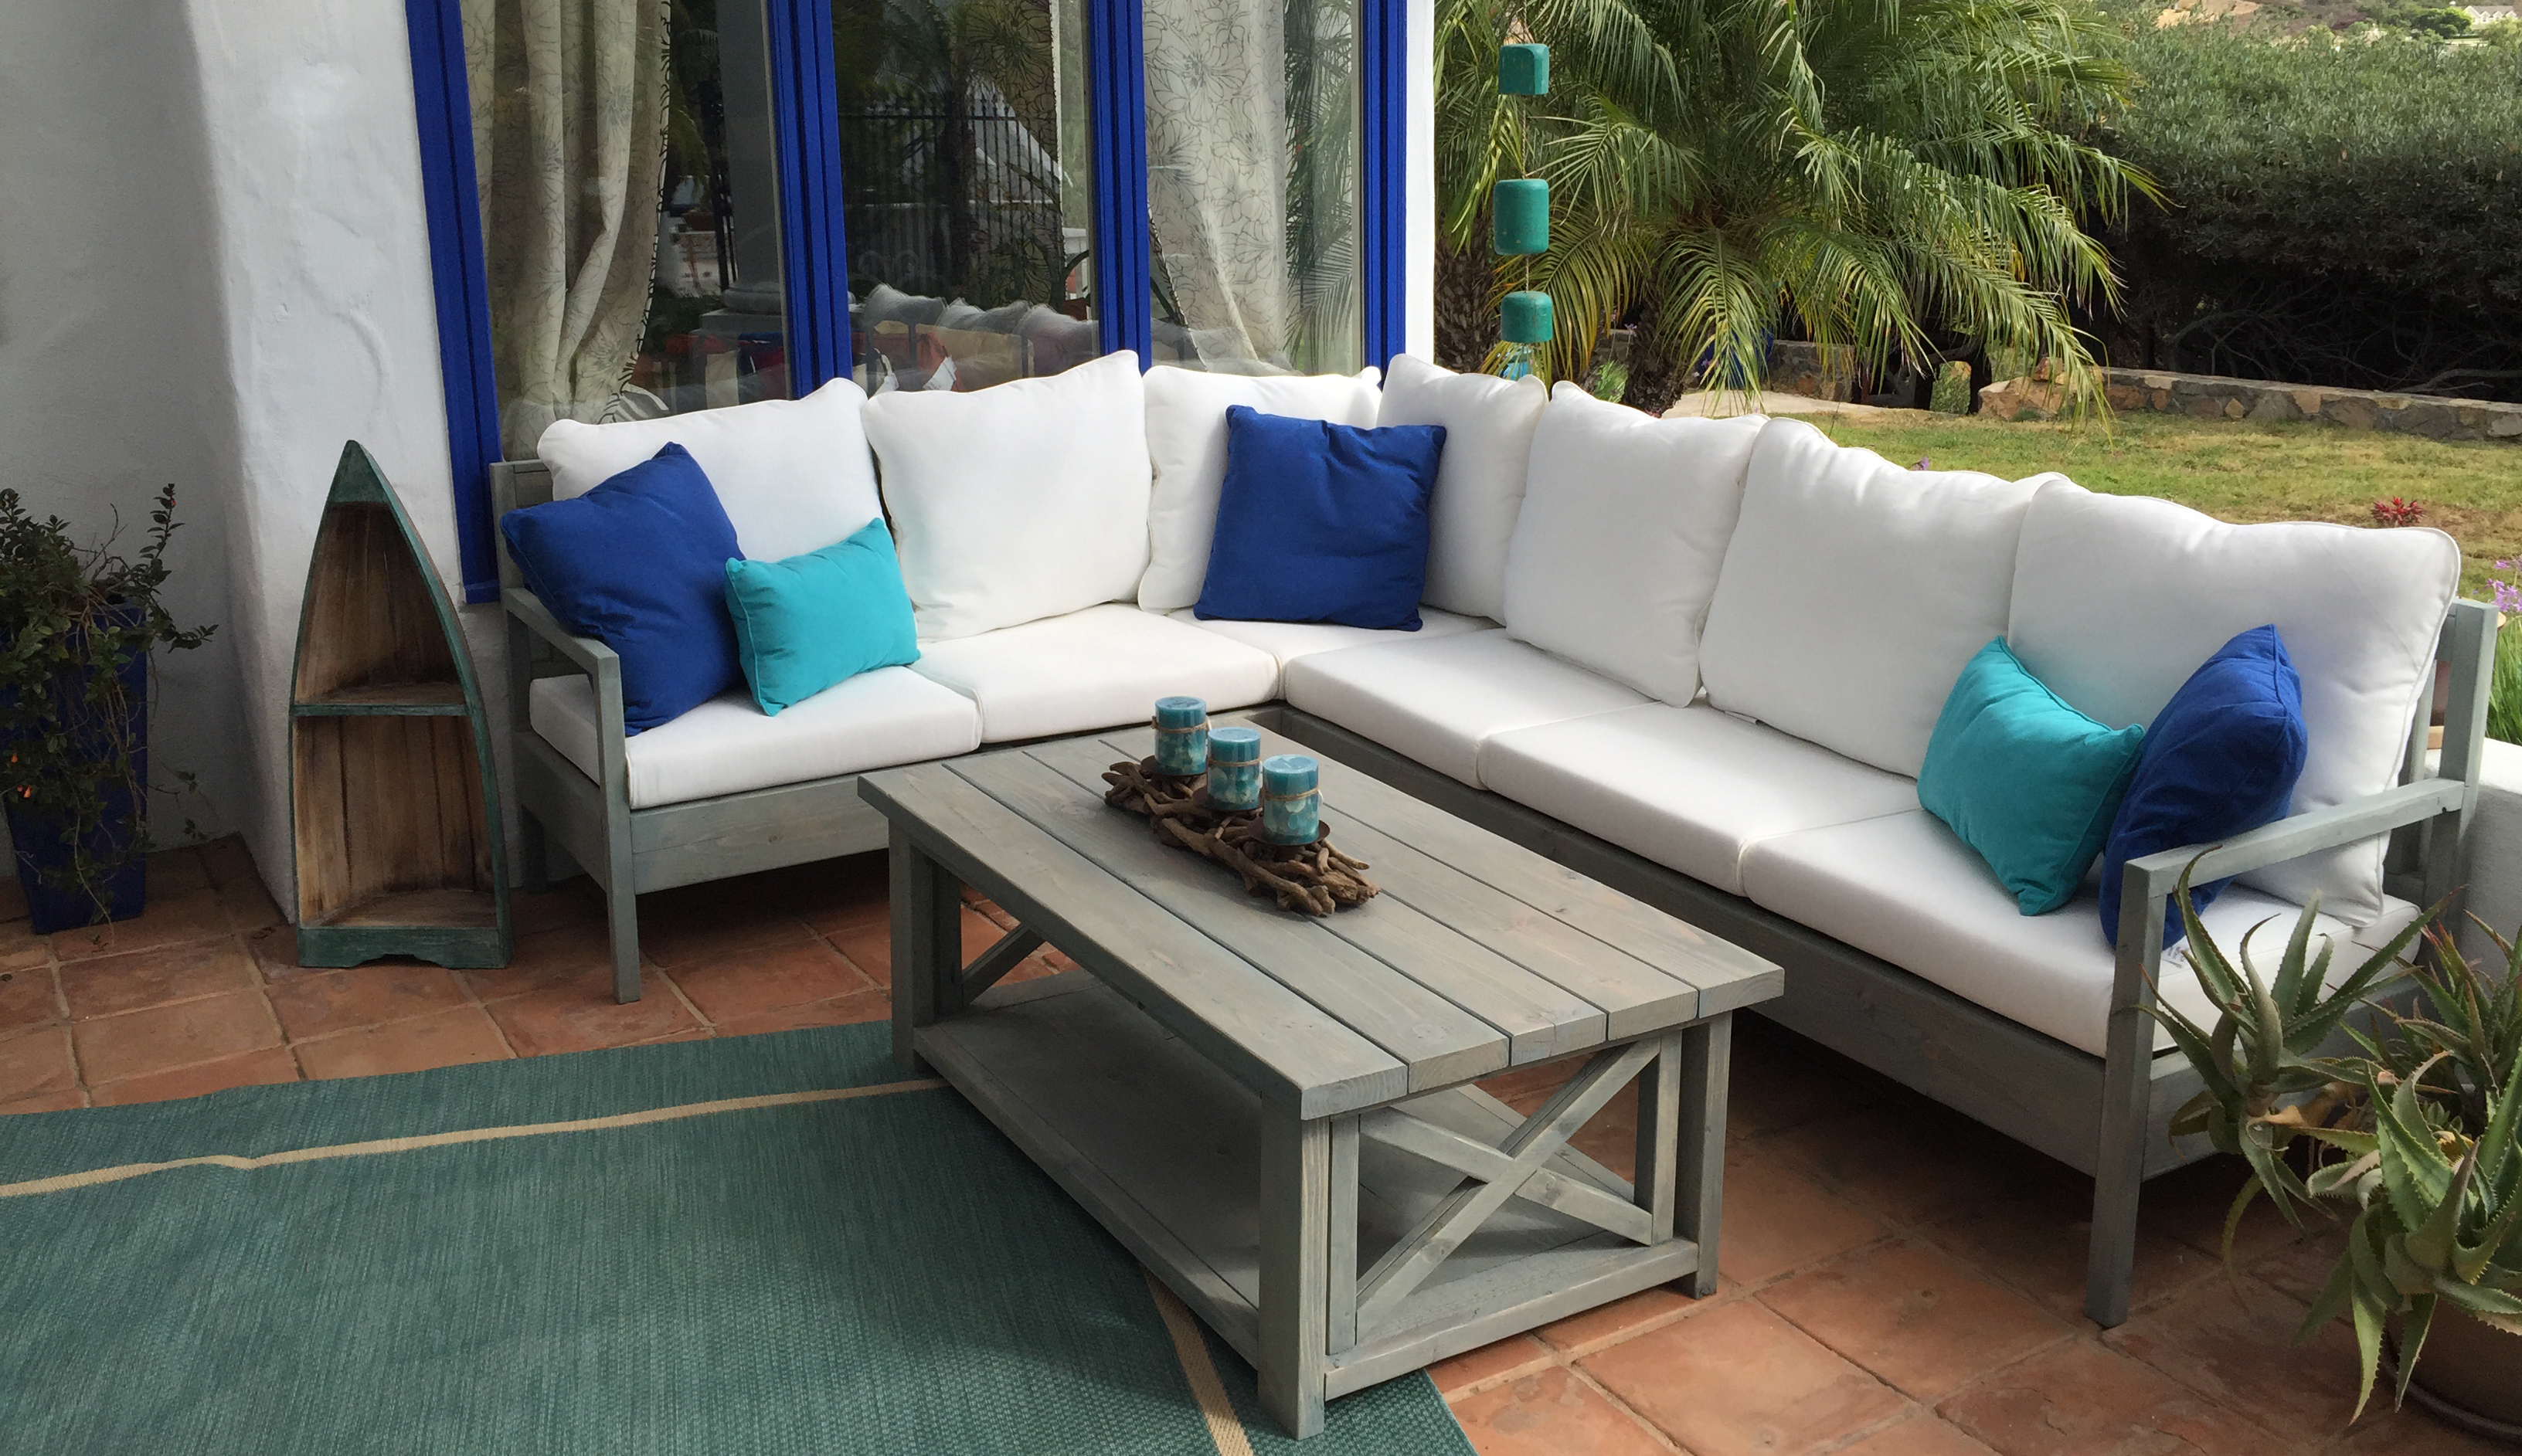 clearance patio discount furniture warehouse san diego